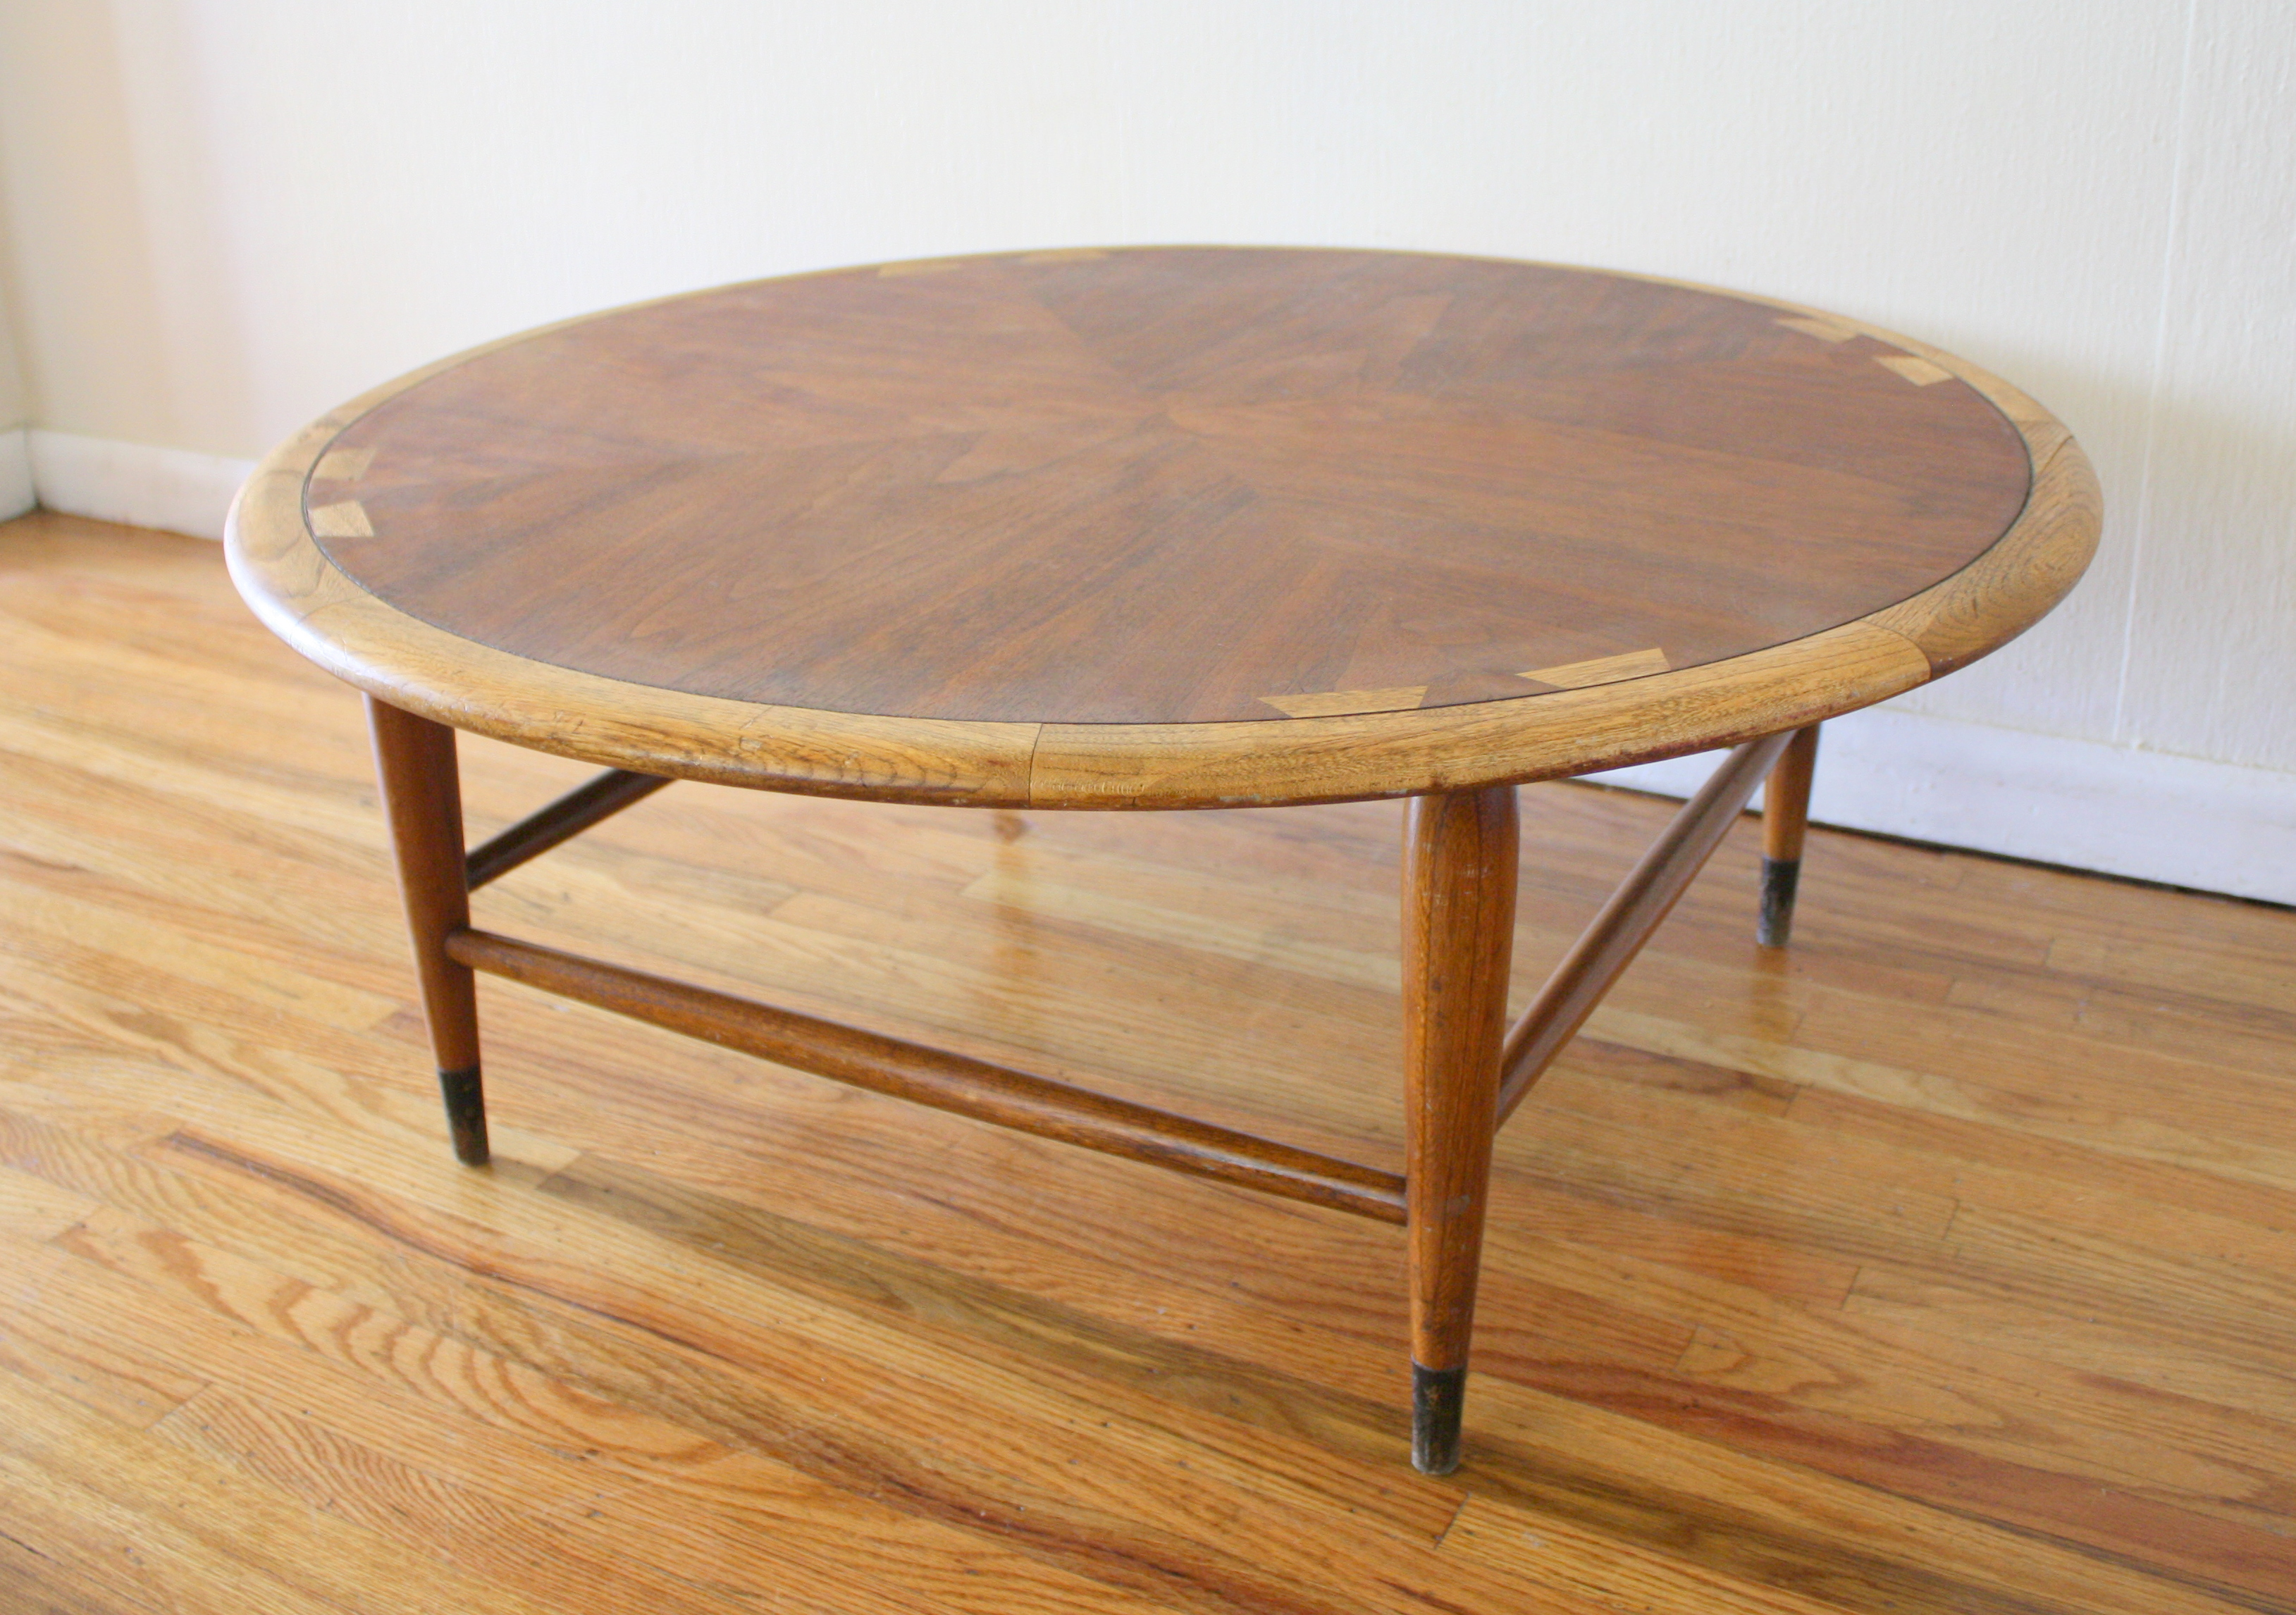 Mid century modern round lane acclaim coffee table for Mid century modern coffee table